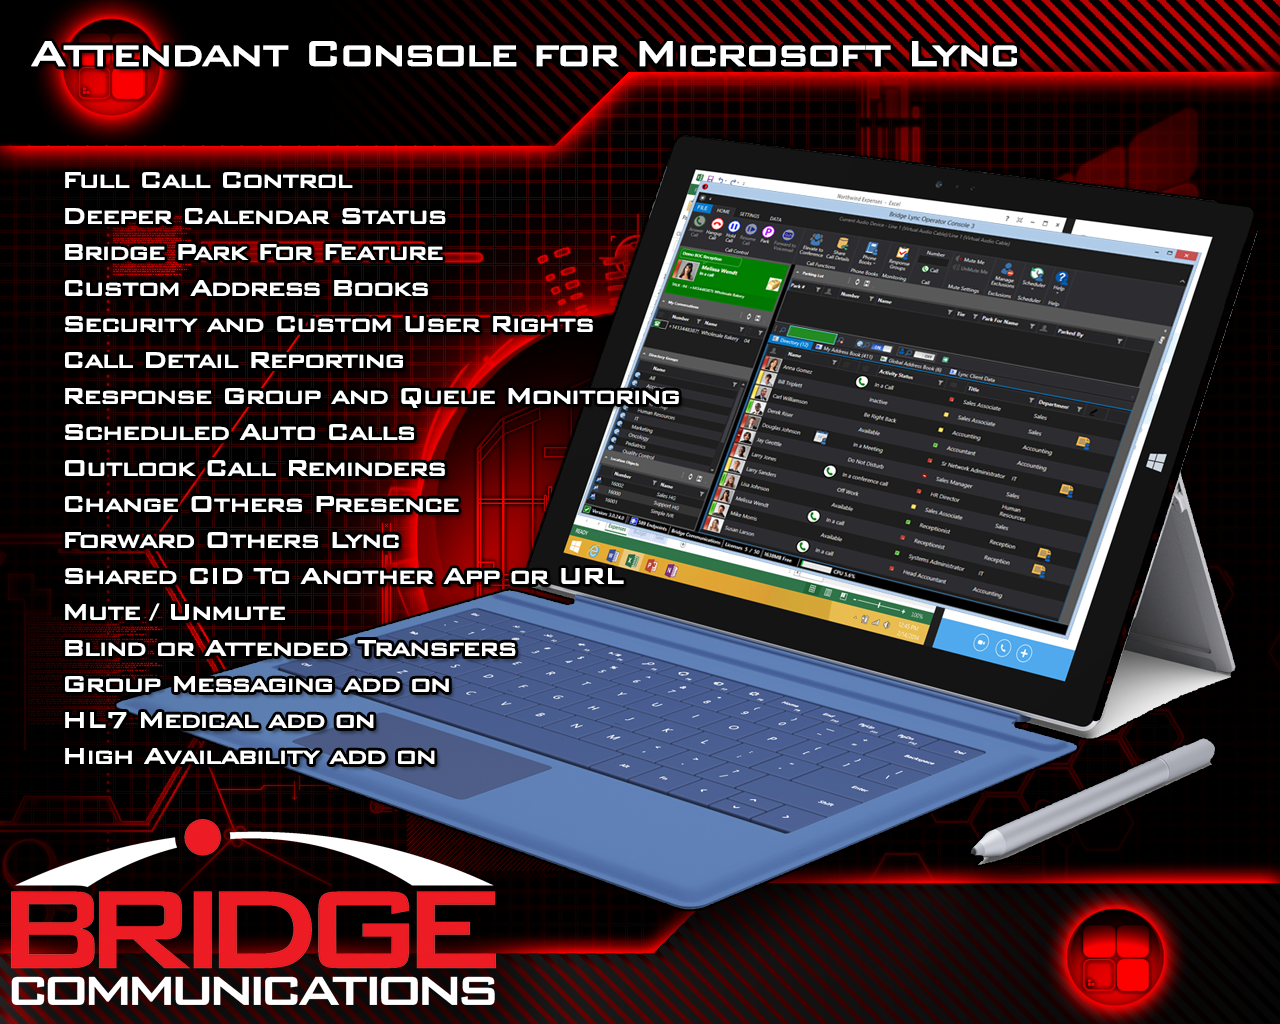 Bridge Lync Operator Console for Windows is designed to be a attendant console solution for Lync 2013.  It can replace the 2010 Lync Attendant program.   It talks with your existing Lync client,  and your Microsoft Exchange Server calendars and contacts (with optional Exchange Connector) .  By combining all of your company's status information into a single source, the operators can make spit second call decisions.  Bridge Lync Operator Console offers full call control function, such as transfer, supervised transfer, parking, hold, resume, call, redirect, voicemail and mobile transfer, etc.  . A unique feature that leverages the power of the Lync  is Park For.  Park For allows the user to park a call for someone, and have that person's Lync client automatically notify them of the call, removing the need for a page, or second call.  You can see a full list of features on the Features page under Products.